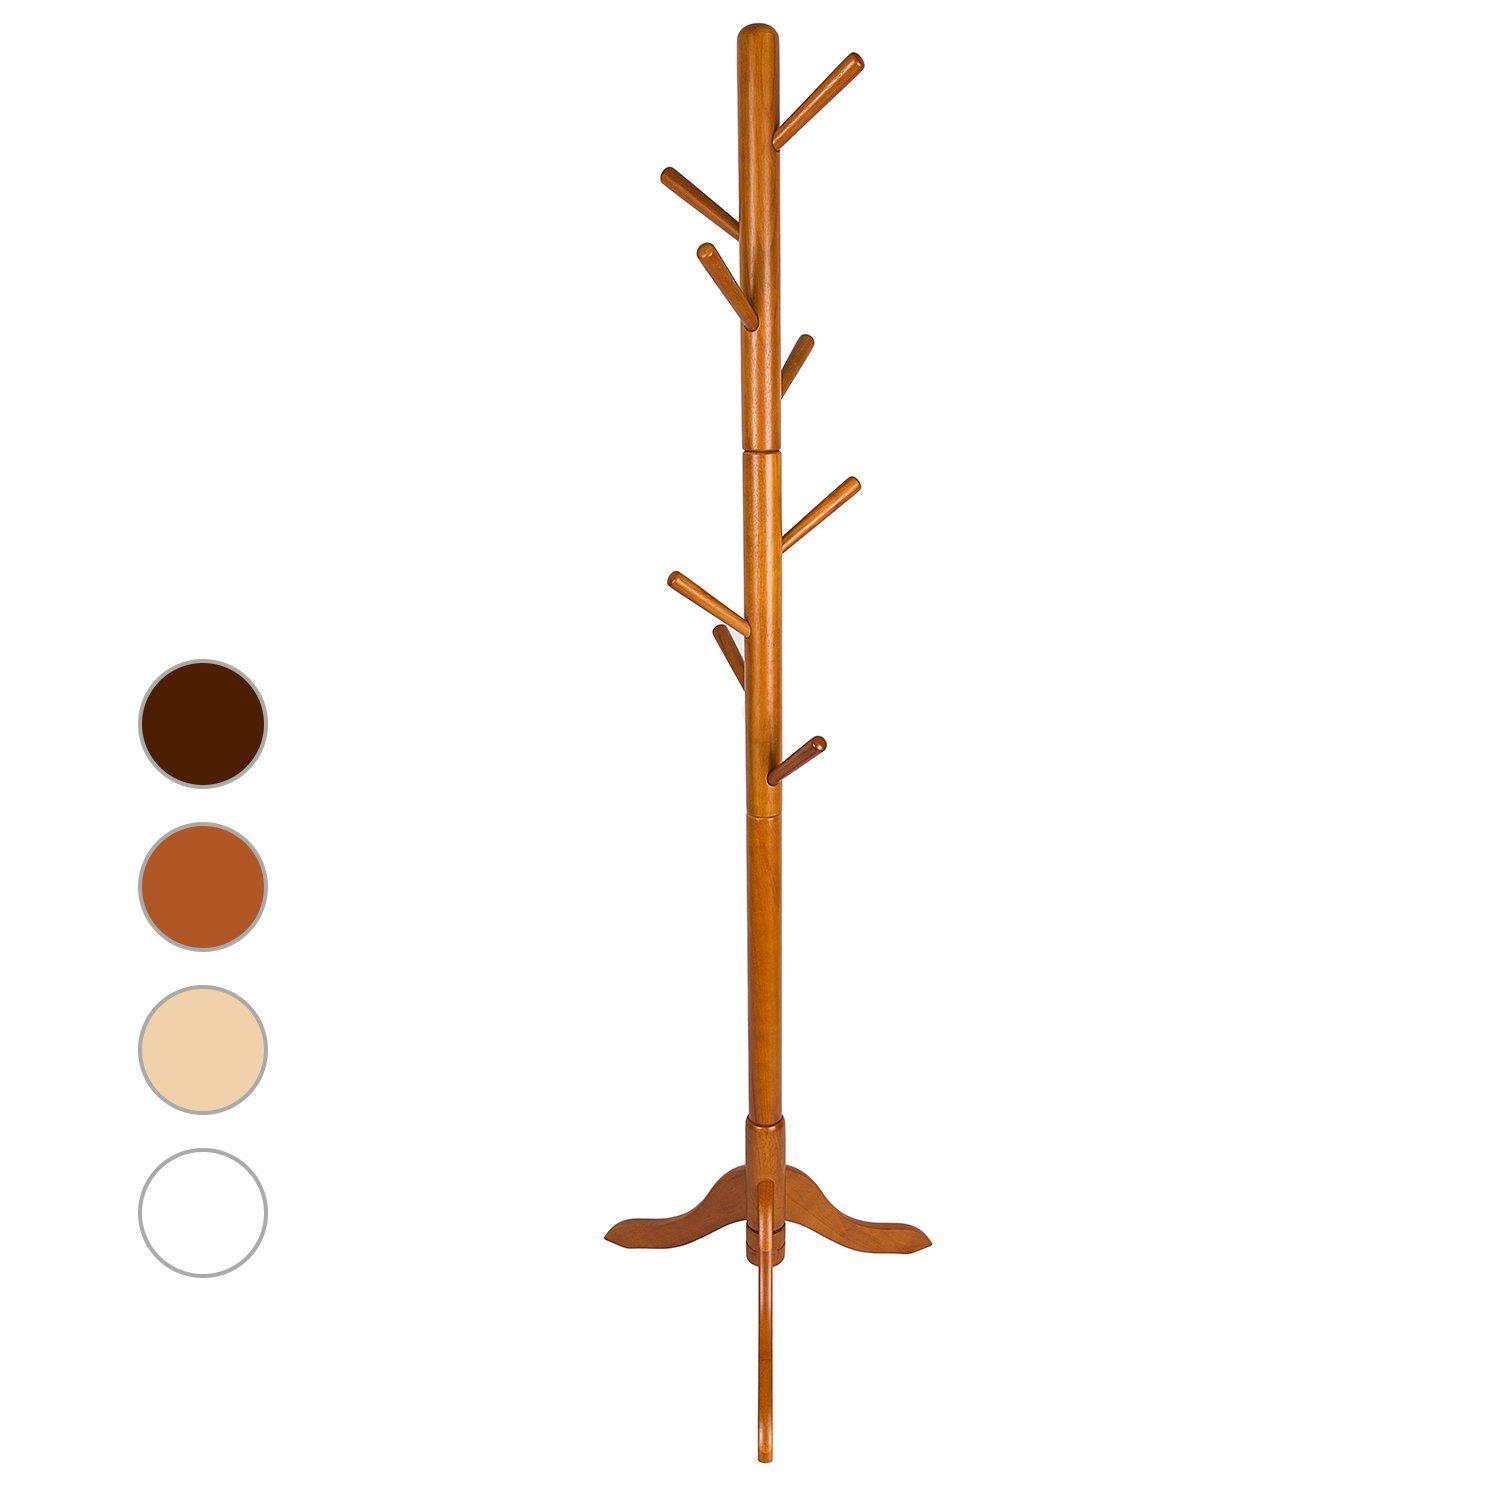 LCH Sturdy Standing Coat Rack Solid Rubber Wood Hall Tree Coat Tree with Tripod Base,8 Hooks(Honey) by LCH (Image #1)